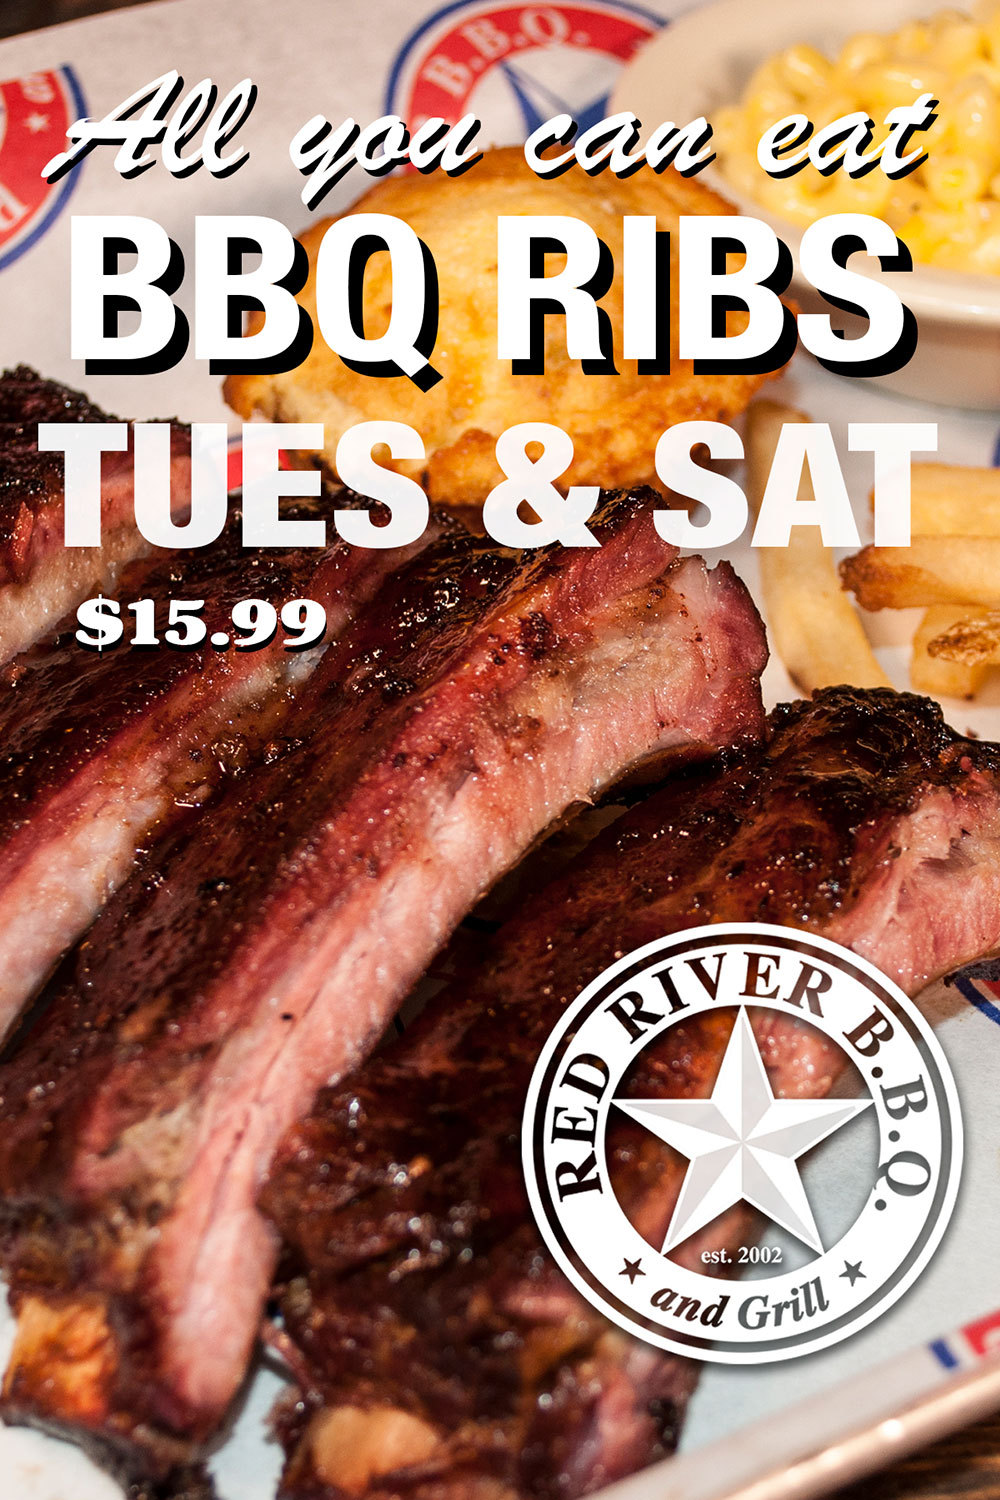 All you can eat BBQ Ribs - $15.99